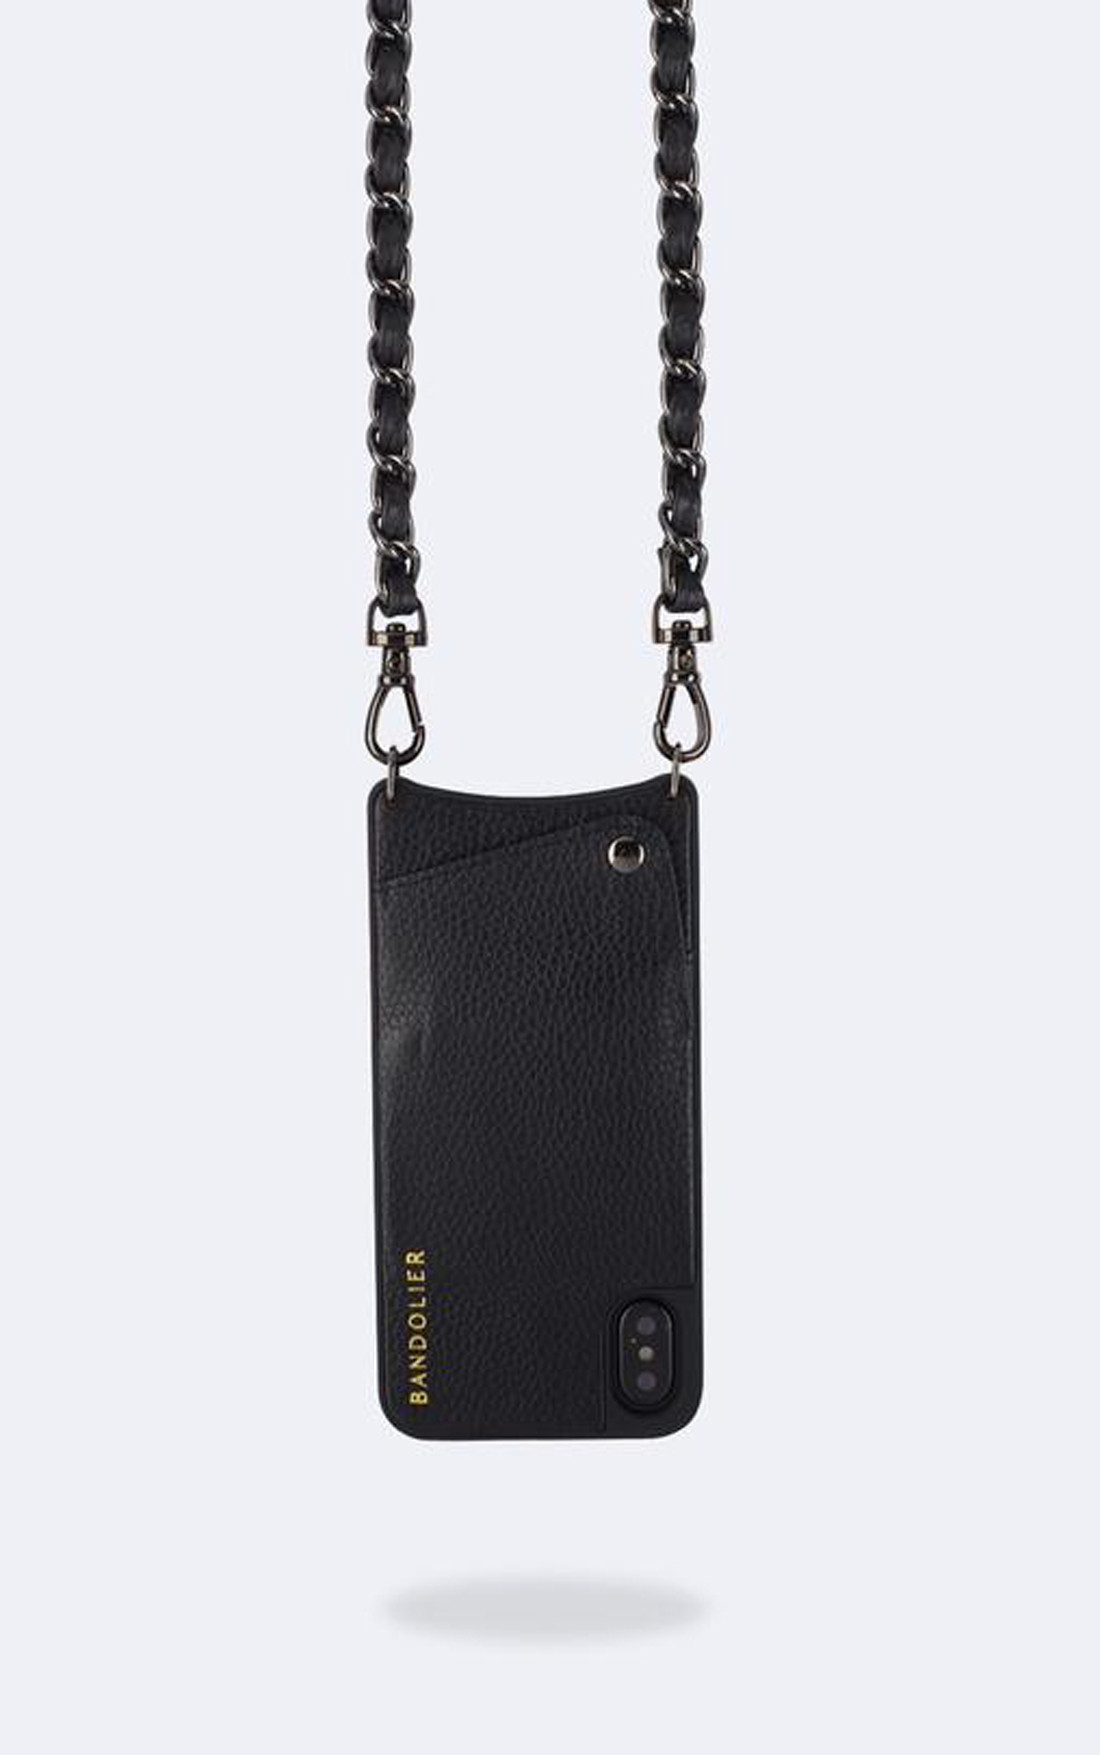 Bandolier - Lucy Black iPhone Case (10LCY1001)